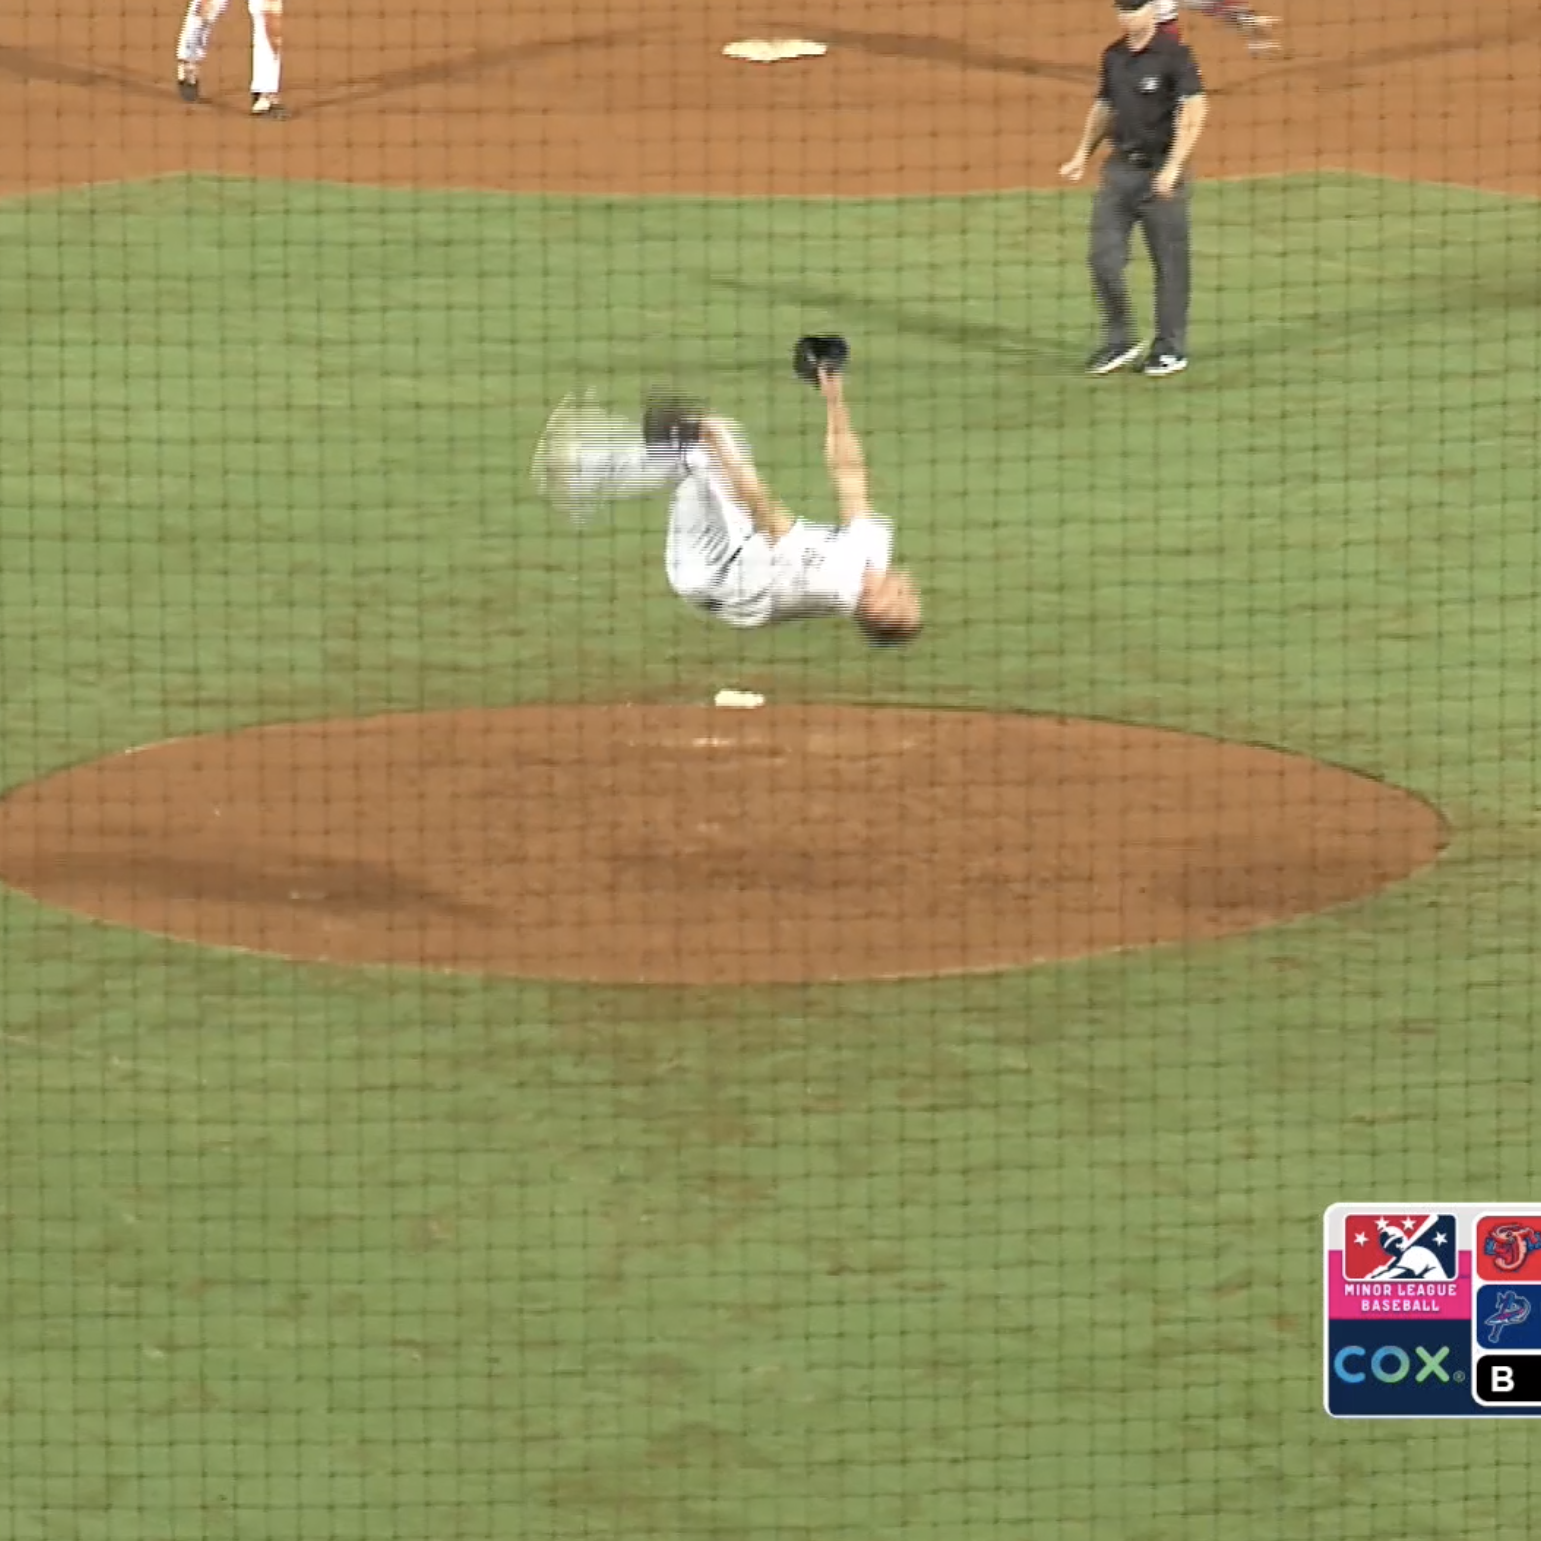 Blue Wahoos pitcher does celebratory backflip on mound after closing out game